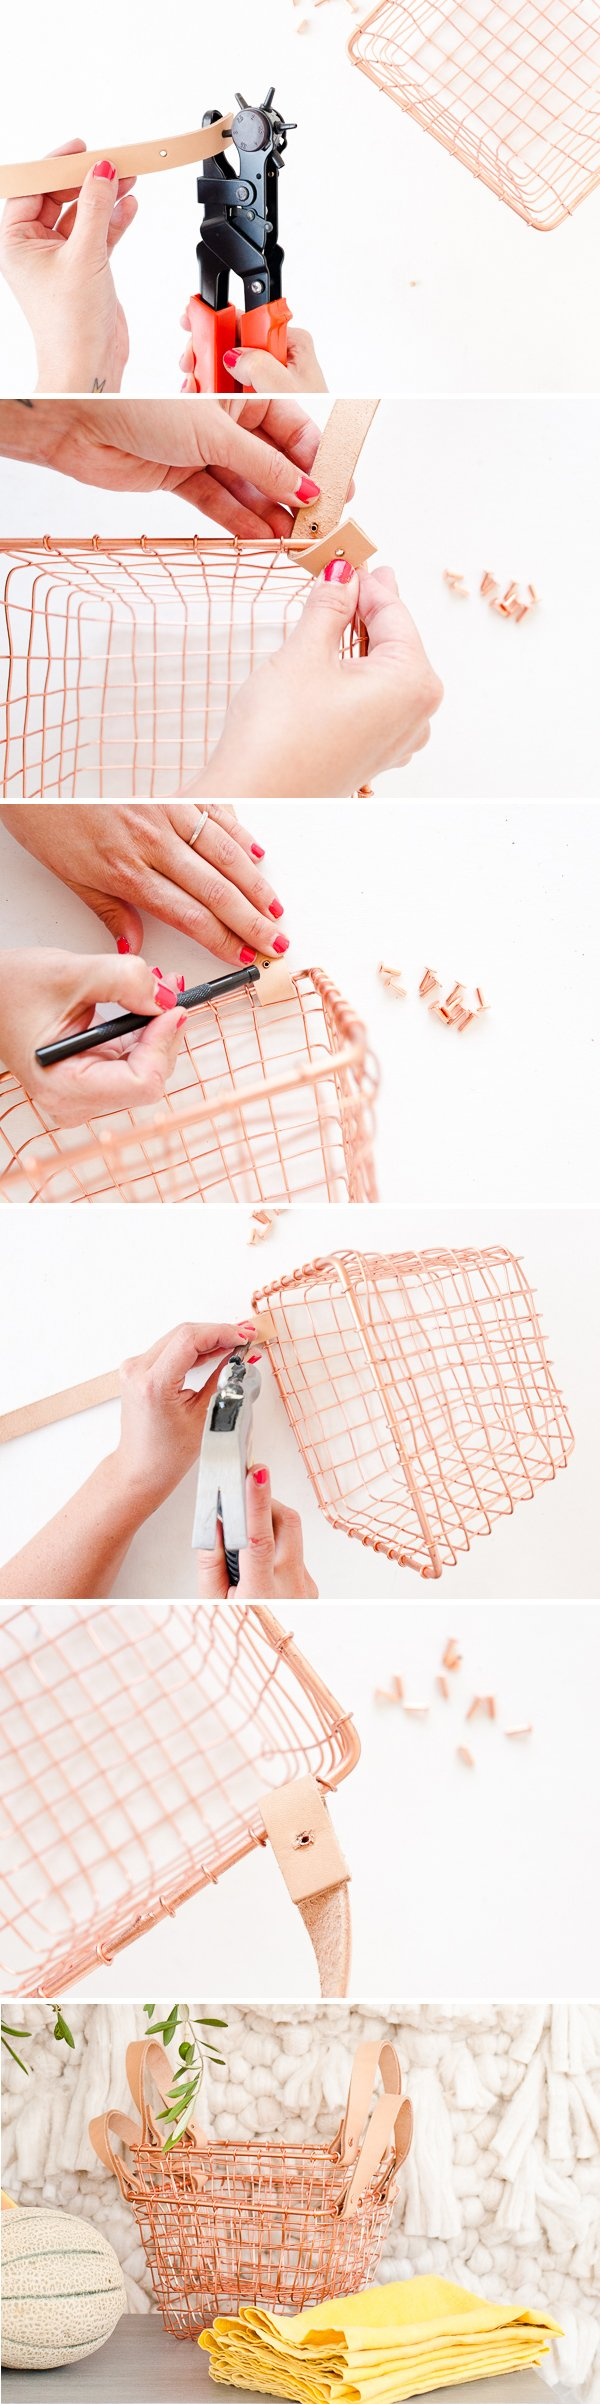 How to add leather handles to any wire basket. Click through for the step by step instructions.